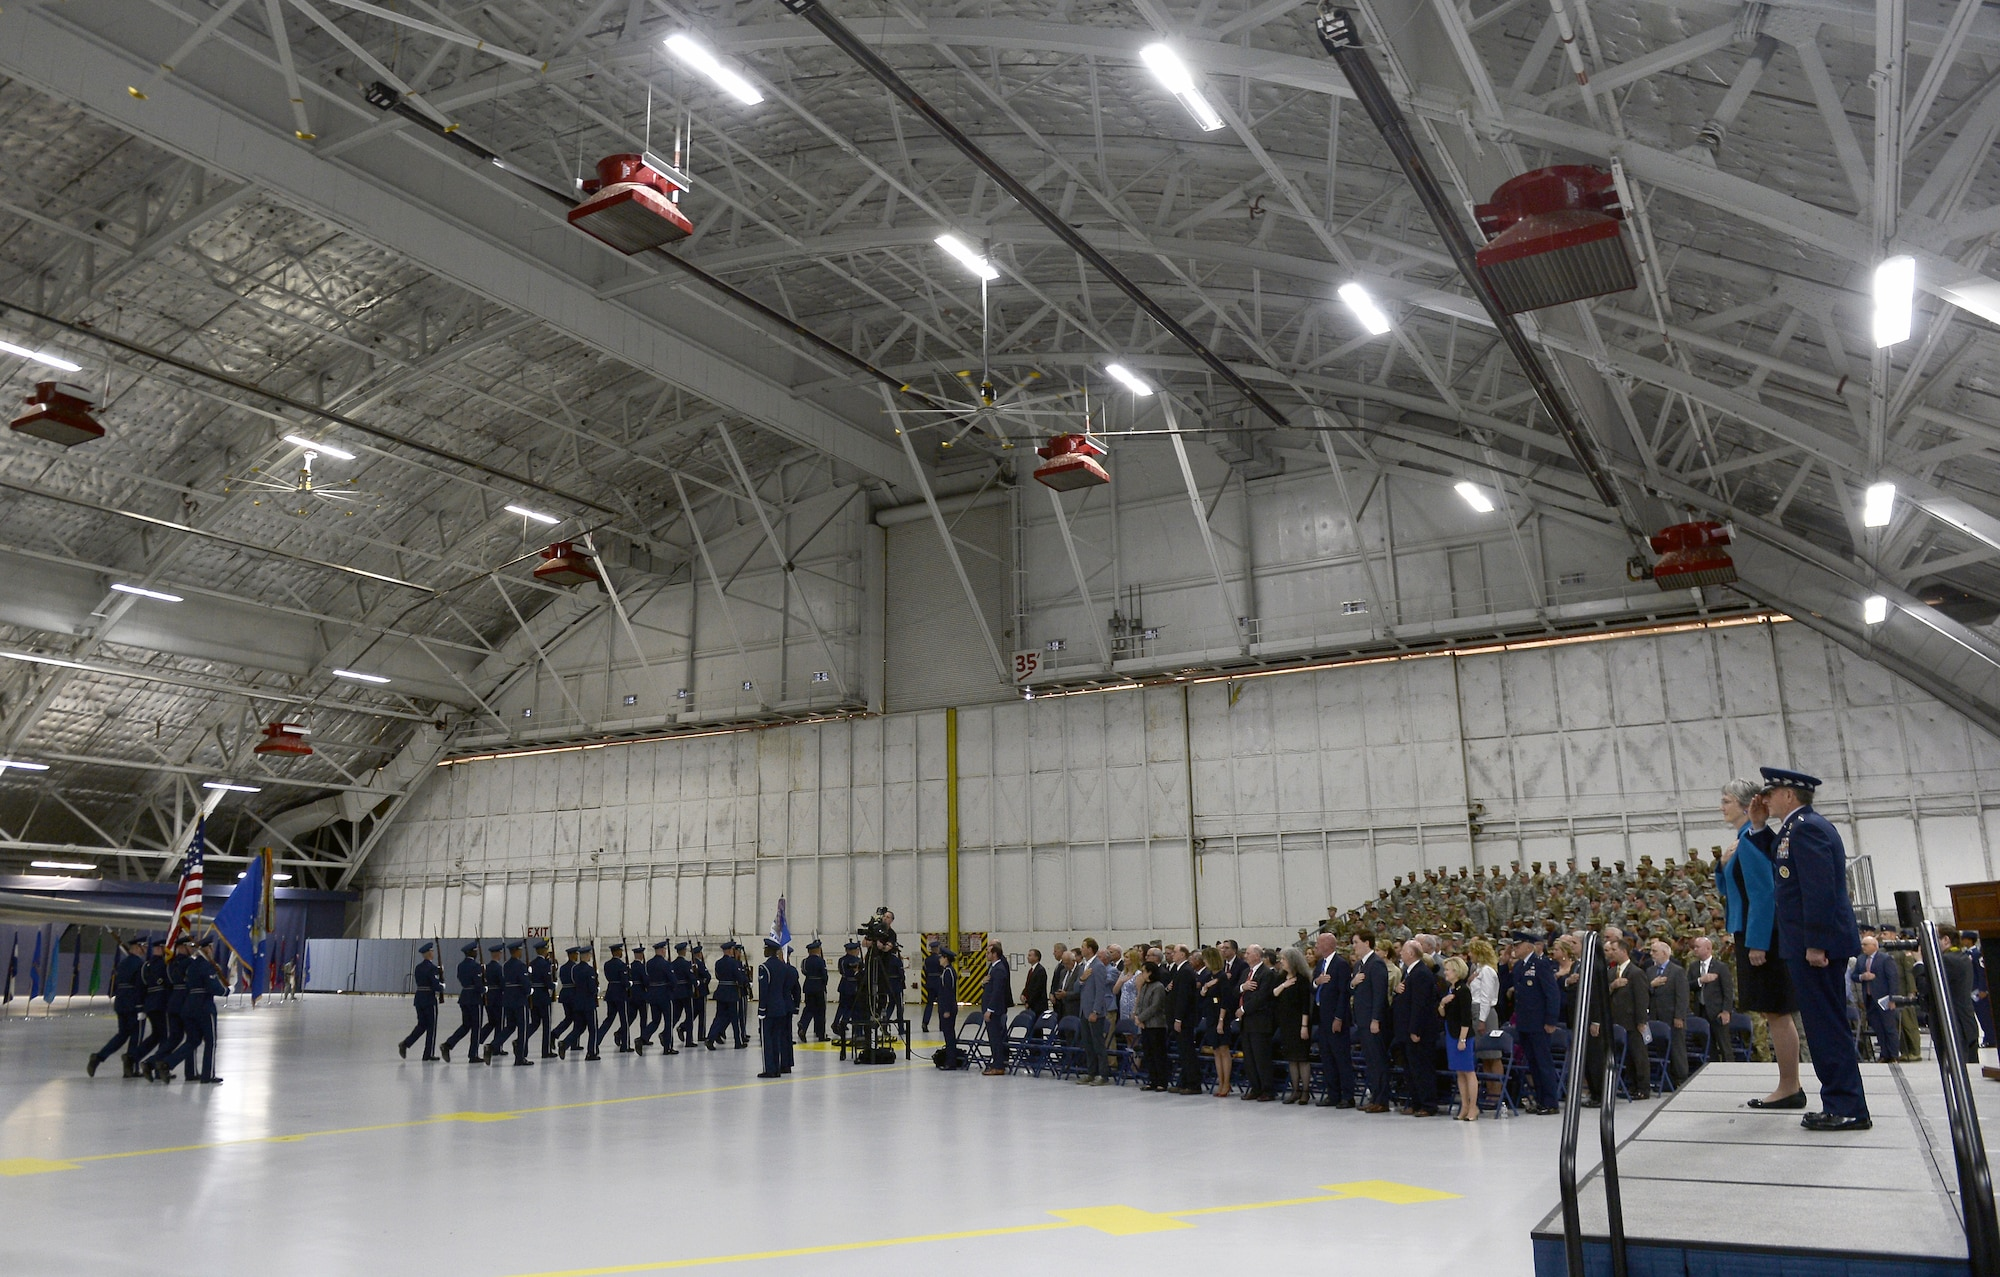 Air Force Honor Guard conducts a pass and review for Secretary of the Air Force Heather Wilson and Air Force Chief of Staff Gen. David L. Goldfein at the farewell ceremony in honor of Wilson at Joint Base Andrews, Md., May 21, 2019. (U.S. Air Force photo by Staff Sgt. Chad Trujillo)